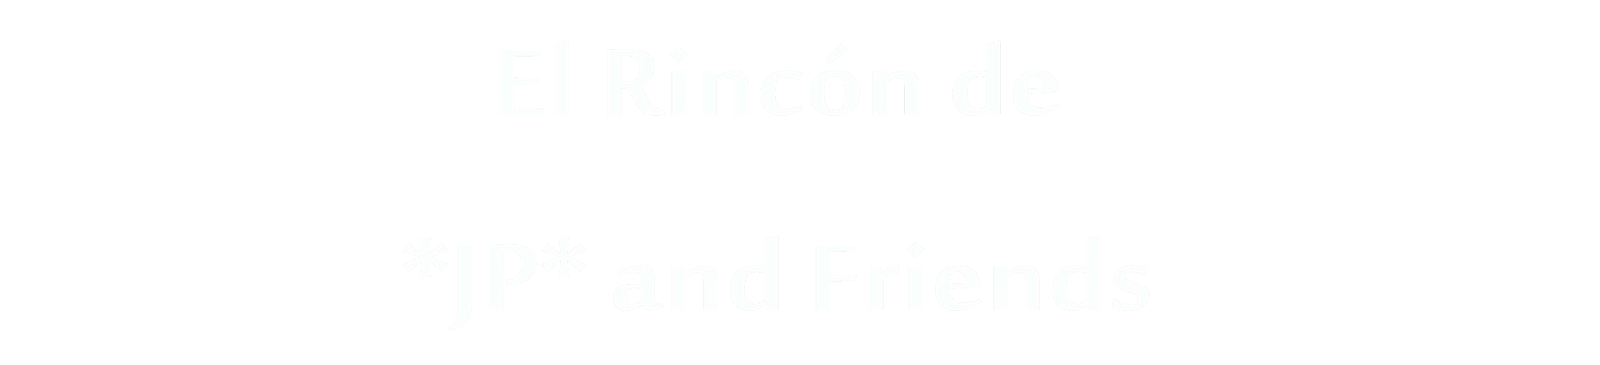 El Rincón de  *JP* and Friends